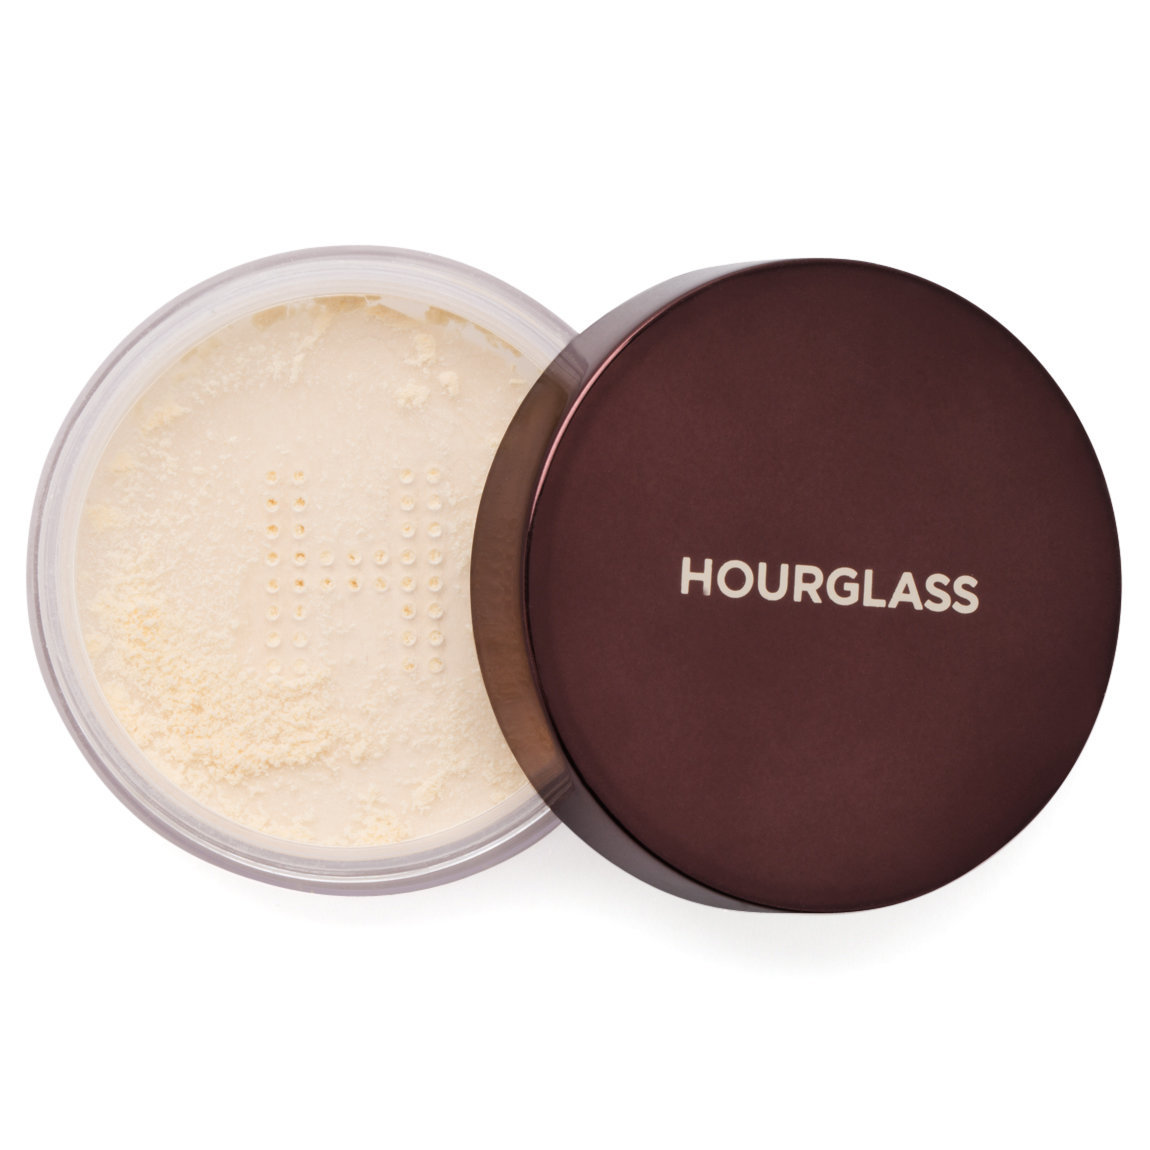 Hourglass Veil Translucent Setting Powder - Travel Size product smear.